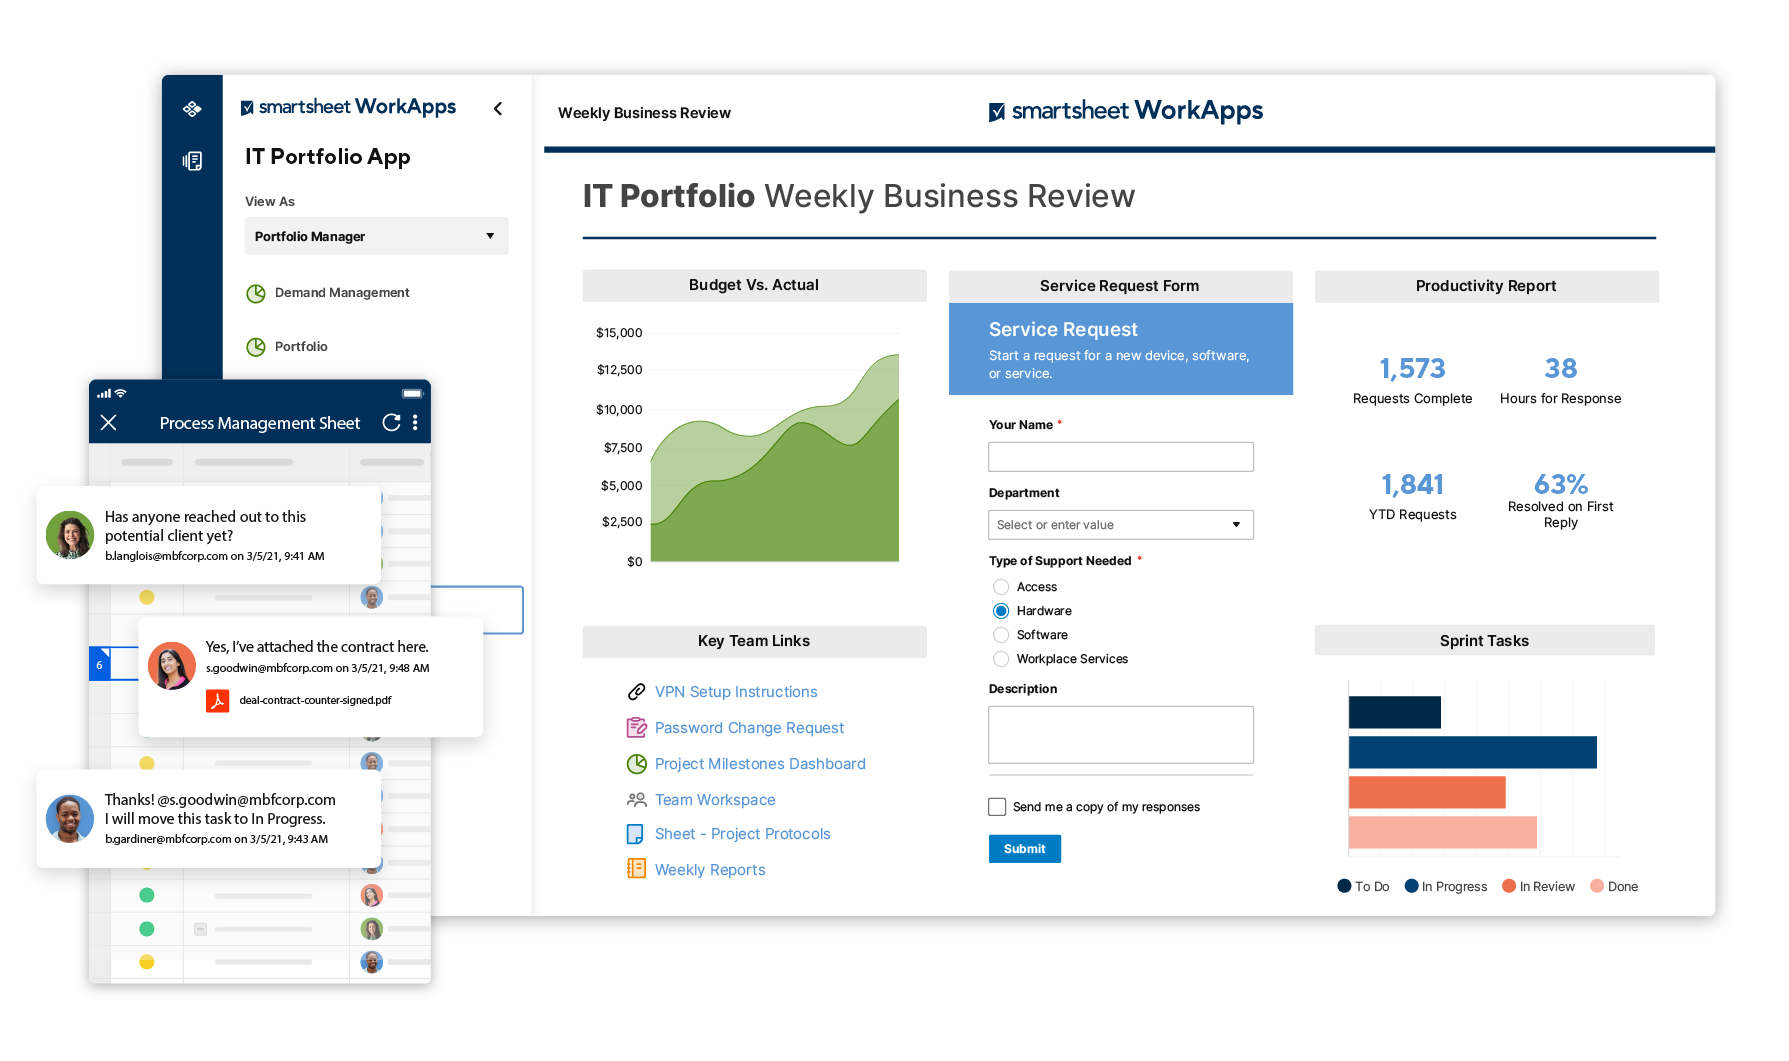 Smartsheet WorkApps Product Screen